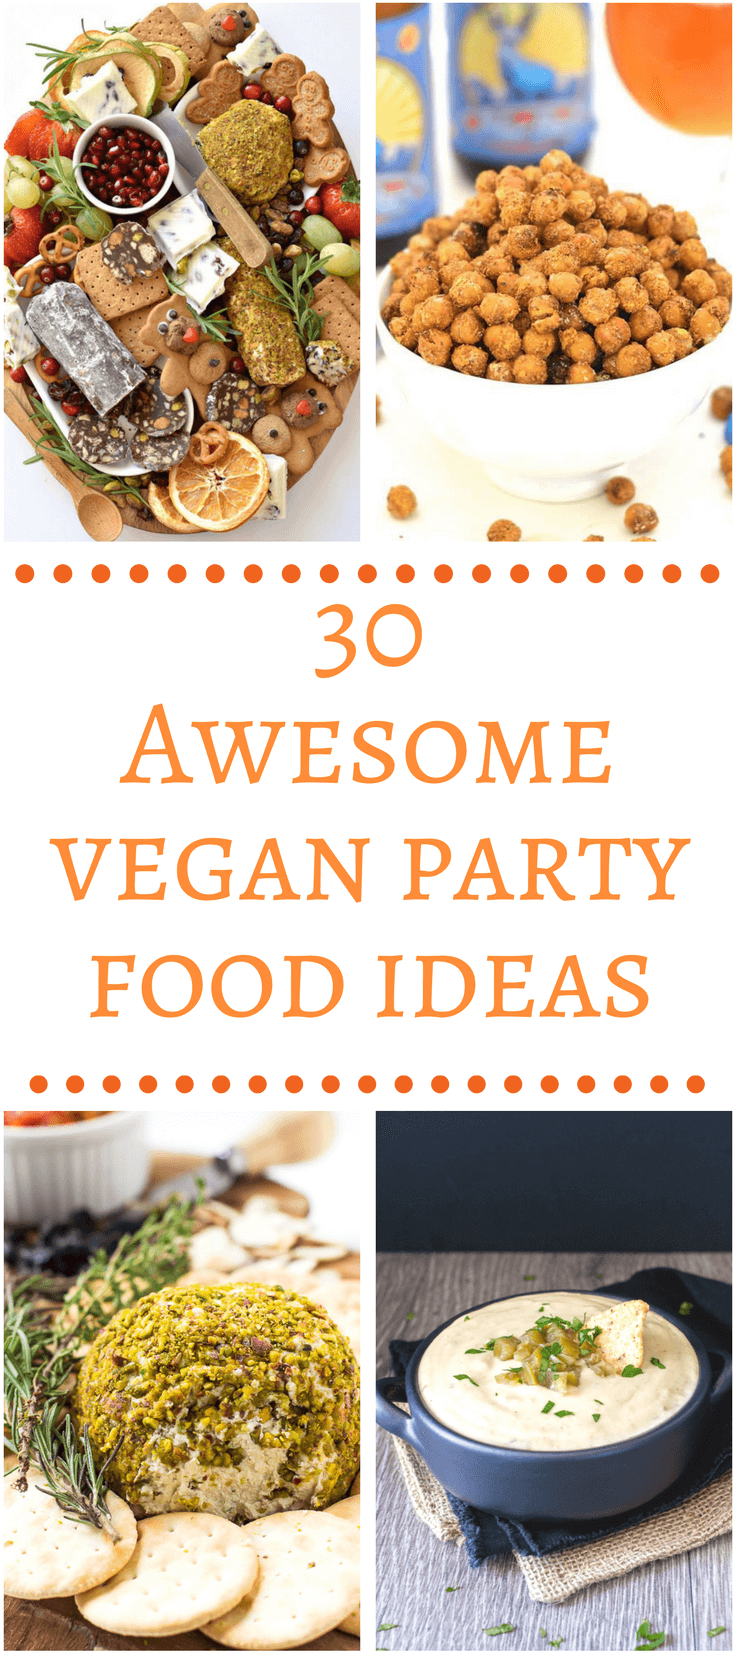 Create an awesome spread and wow your guests with these amazing vegan party food ideas!